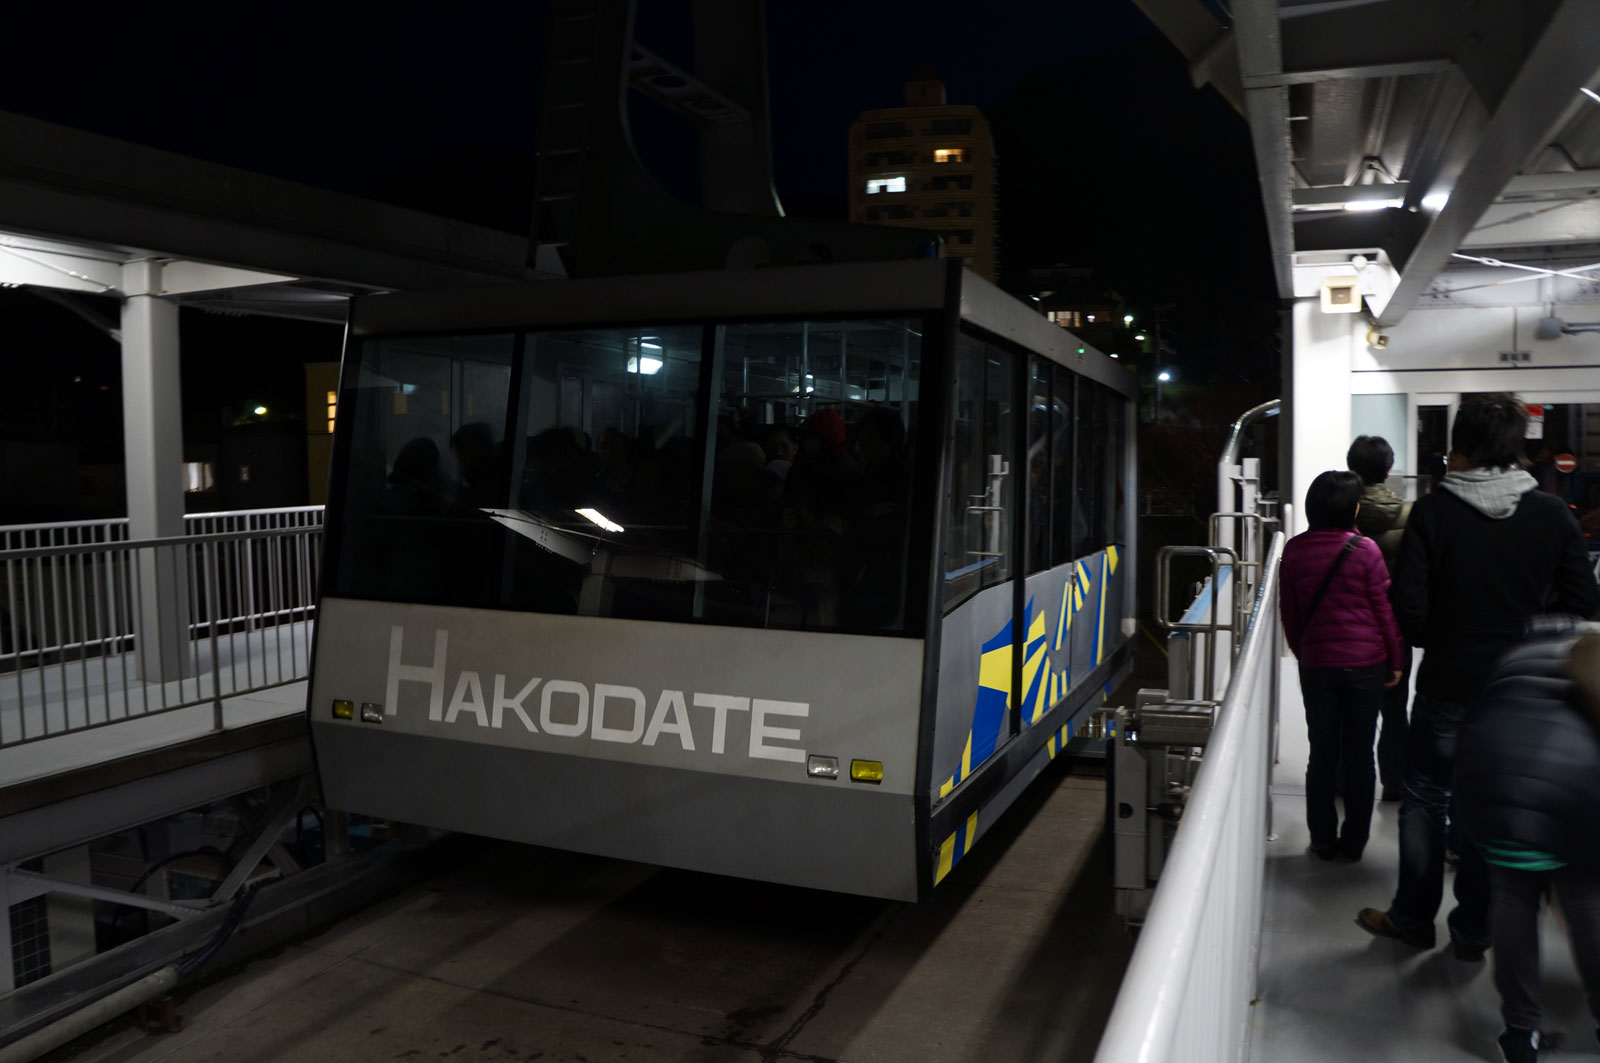 I use this ropeway to get to the top of Hakodateyama :)